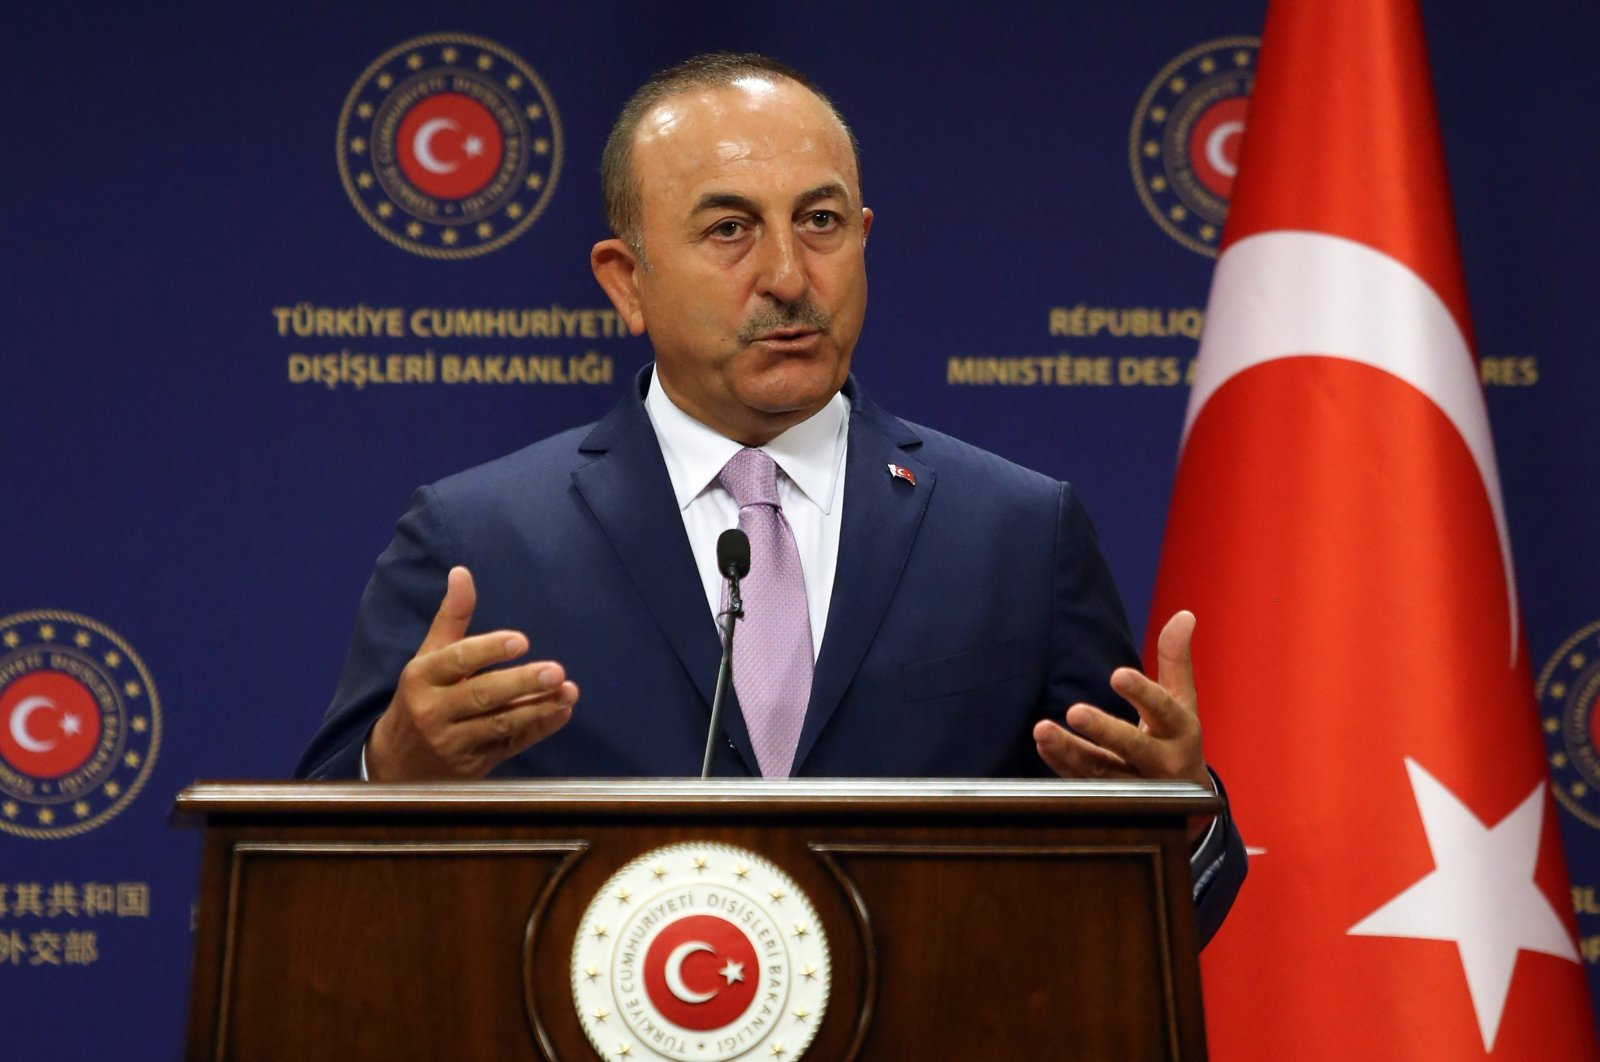 Turkish Foreign Affairs Minister Mevlüt Çavuşoğlu speaks during a joint press conference with his Spanish counterpart following their meeting at the Turkish Foreign Ministry in Ankara, Turkey, July 27, 2020. (AFP Photo)